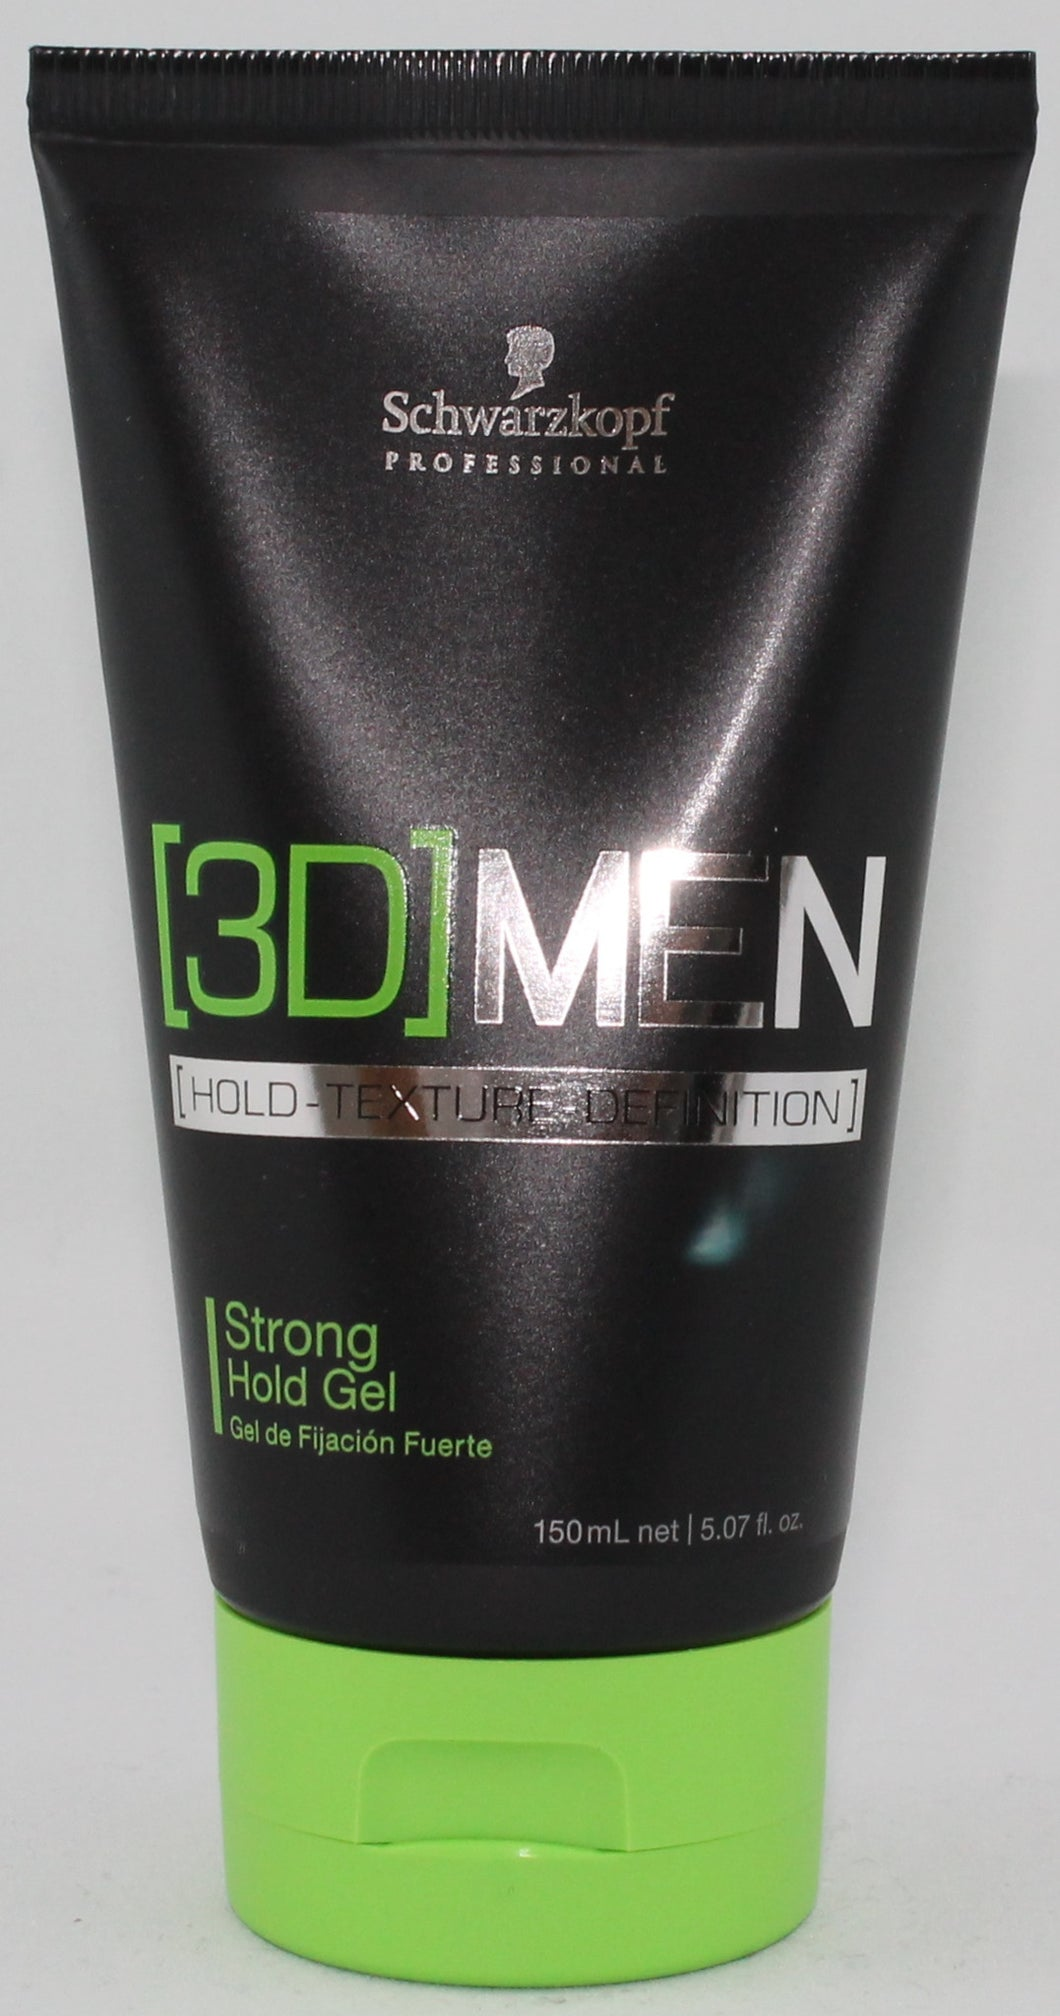 SCHWARZKOPF [3D] STRONG HOLD GEL